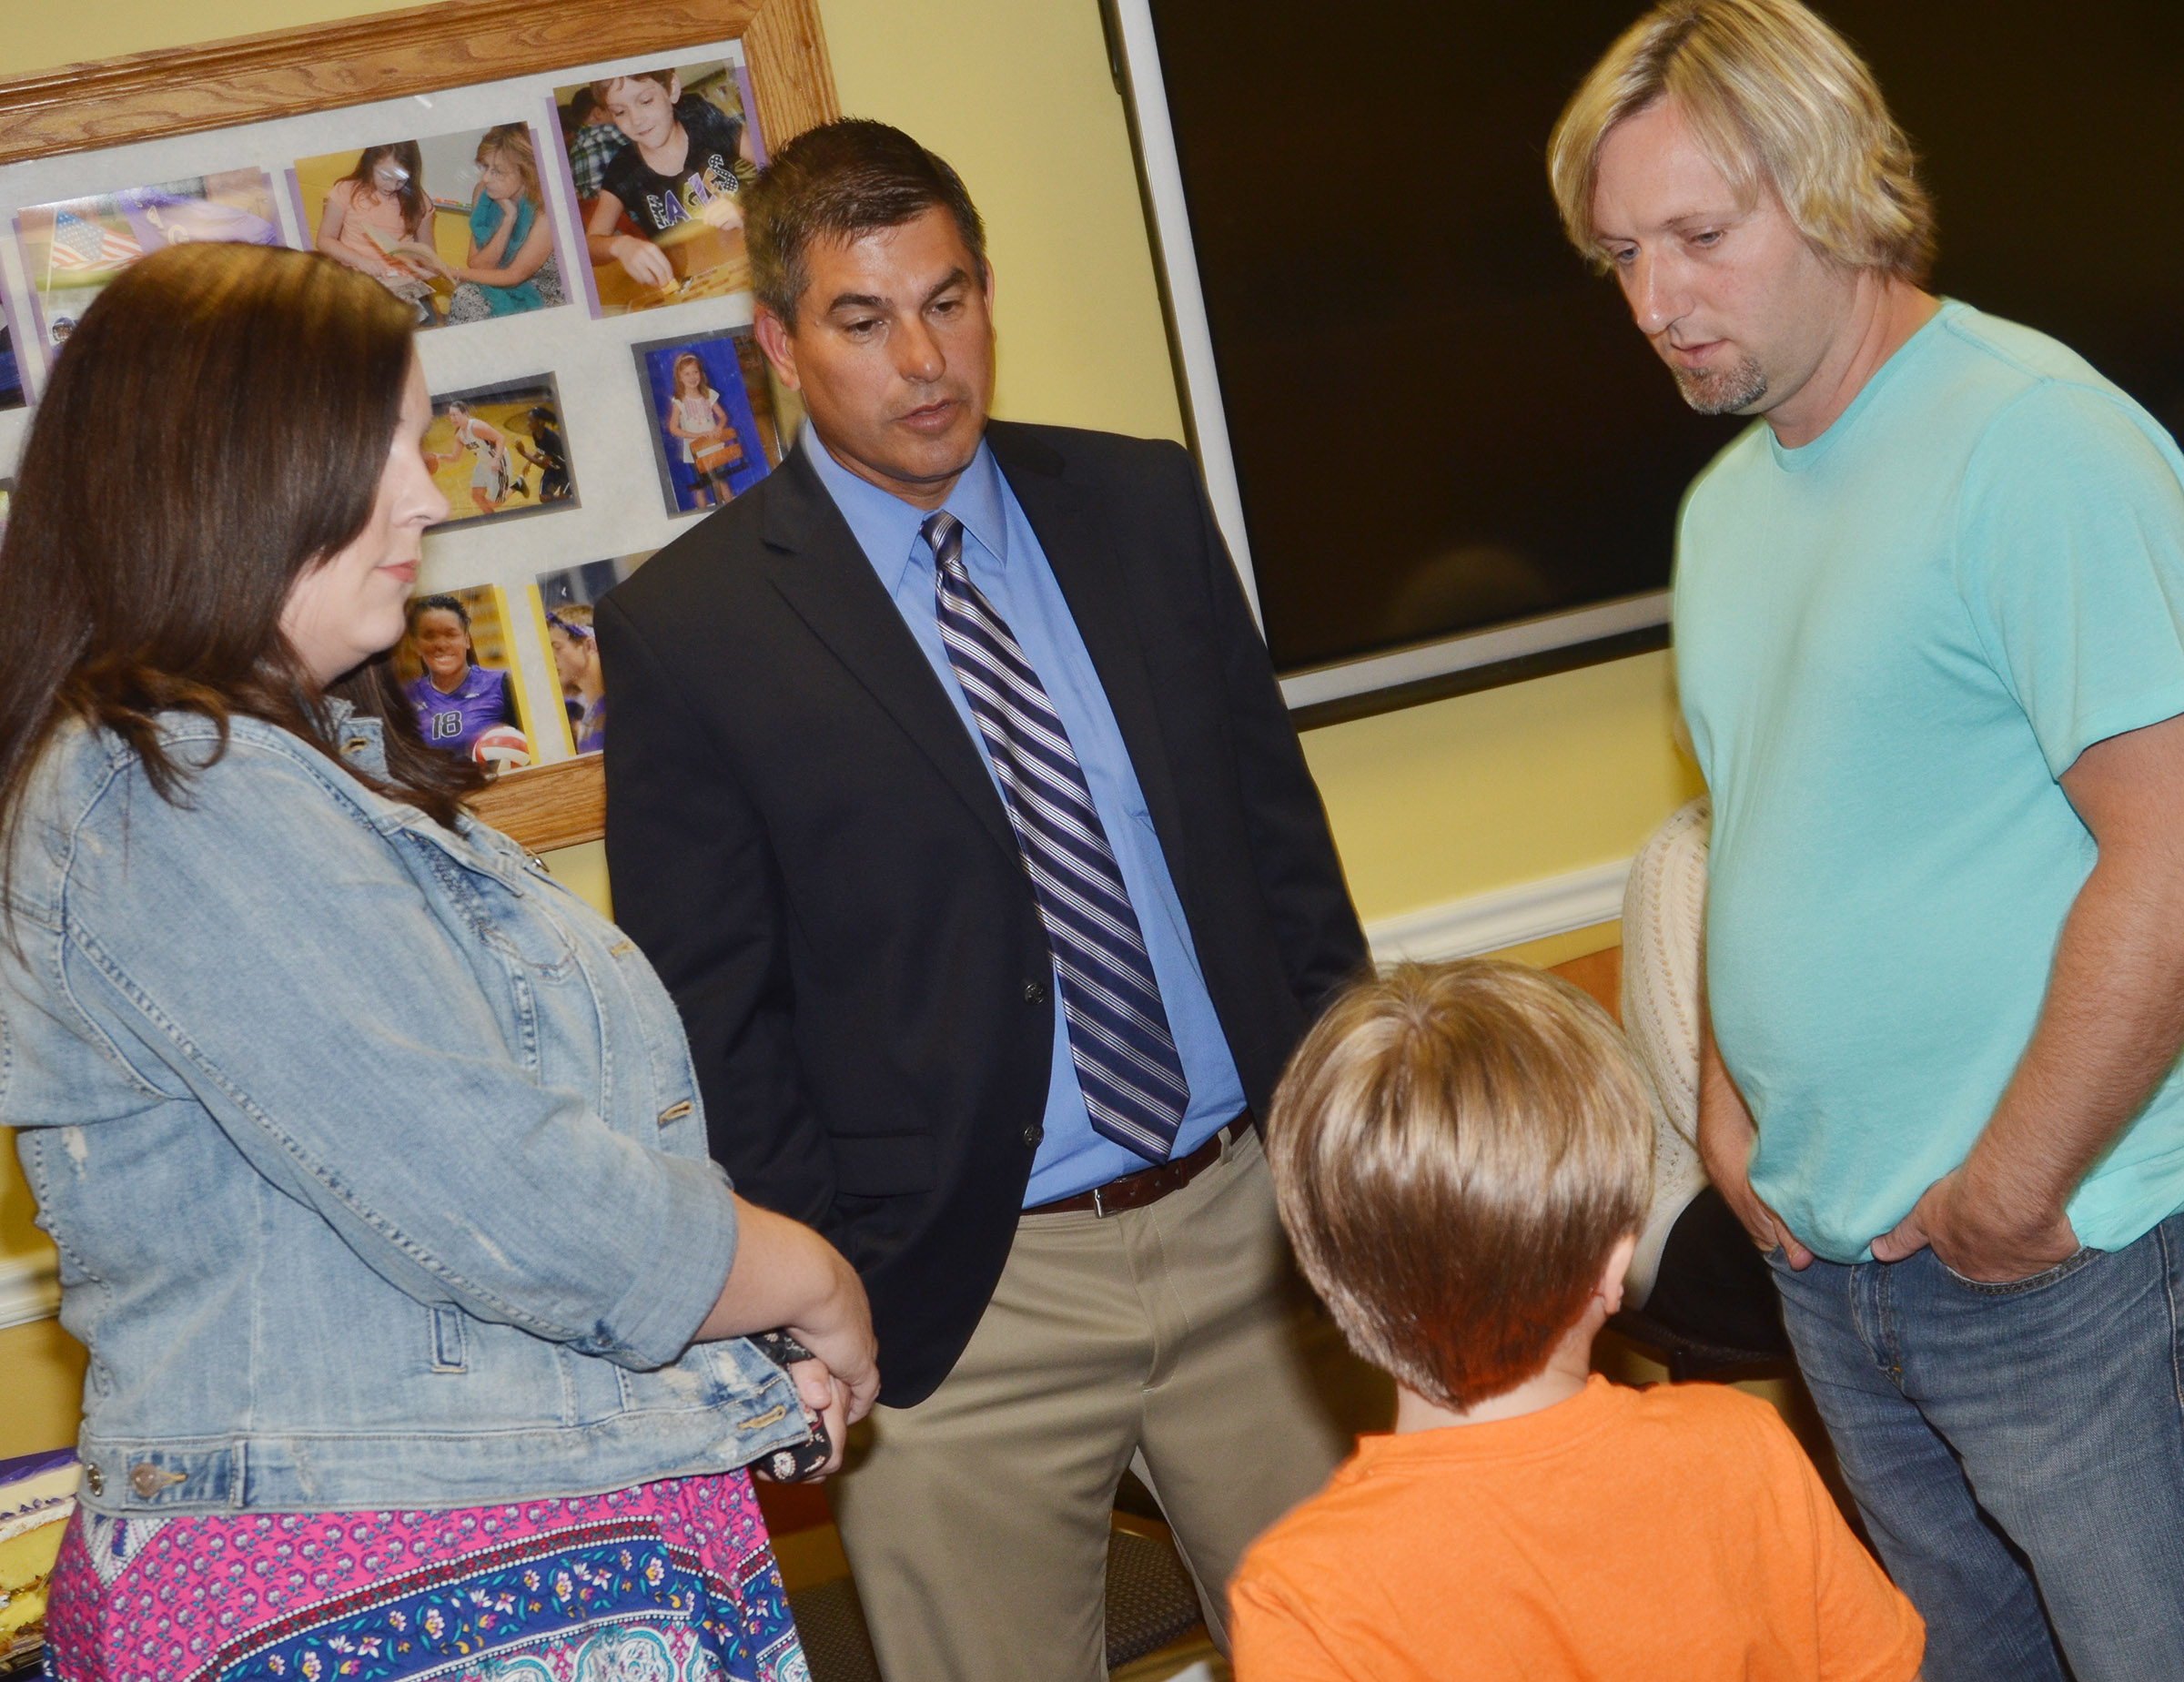 Superintendent Kirby Smith talks with Lindsay and David Williams and their son, Gavin, who will be a first-grader at CES. Lindsay Williams teaches English and David Williams is a virtual instructor at CHS.